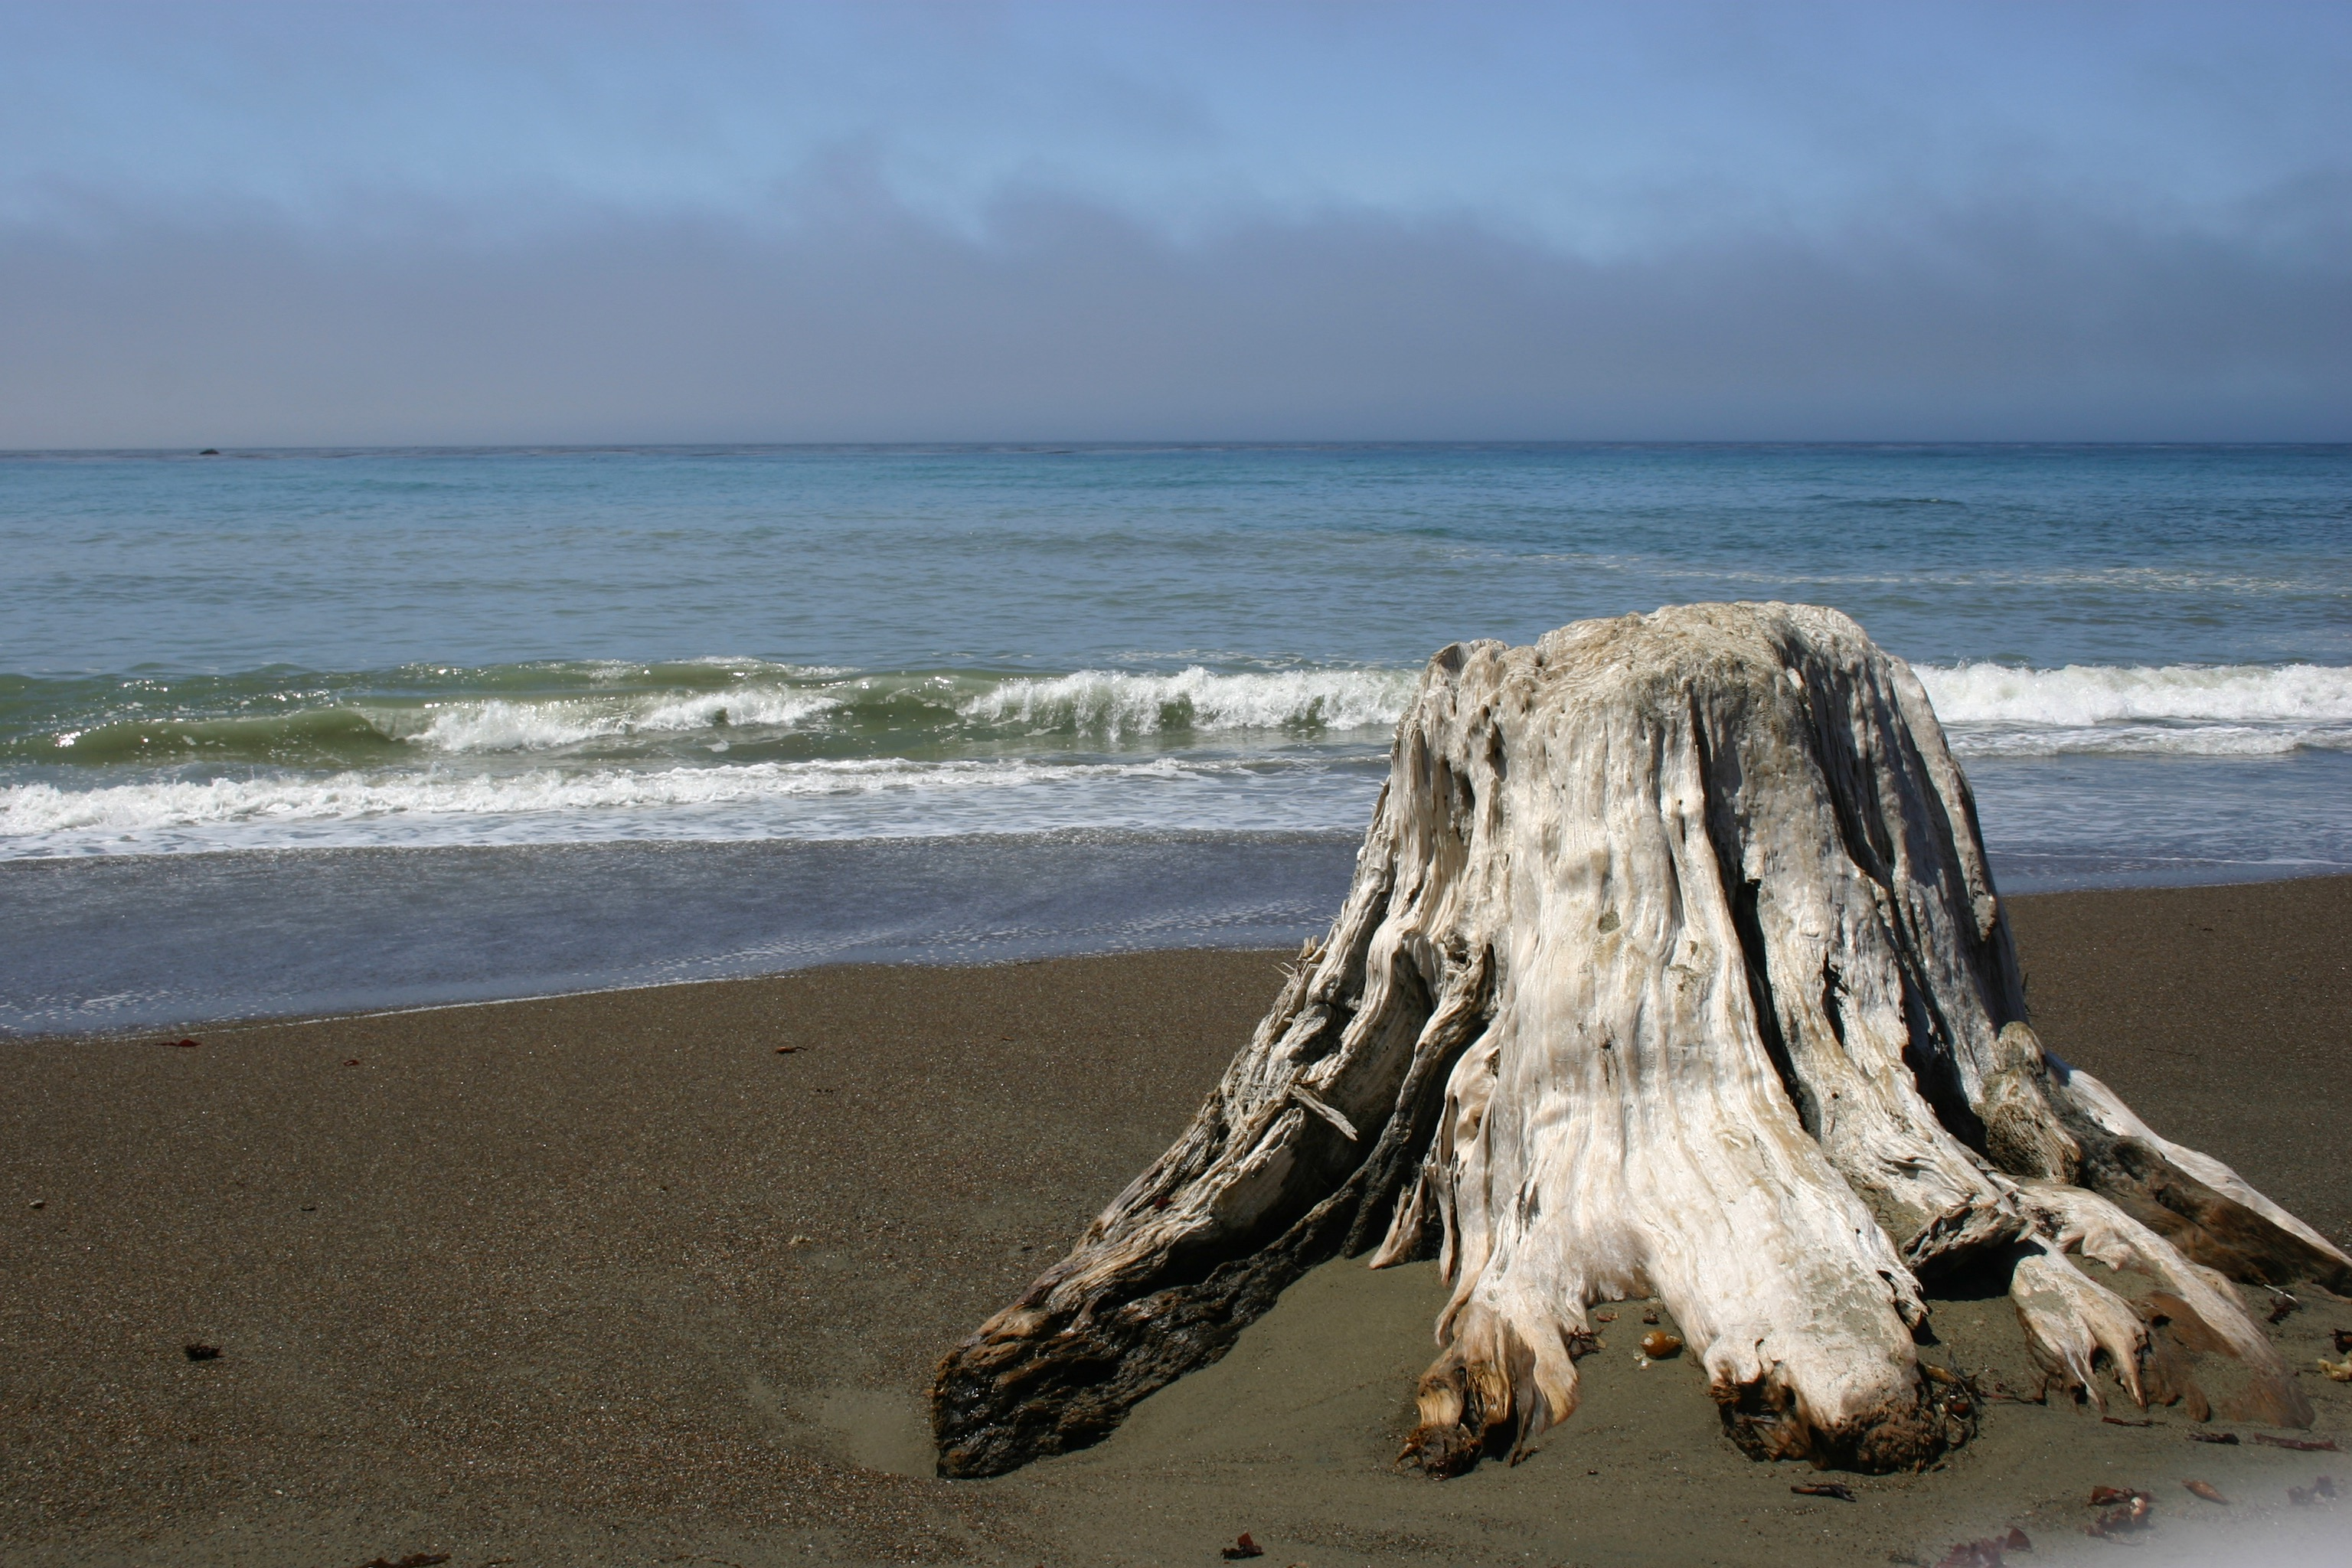 Sun-bleached driftwood tree trunk on the beach.